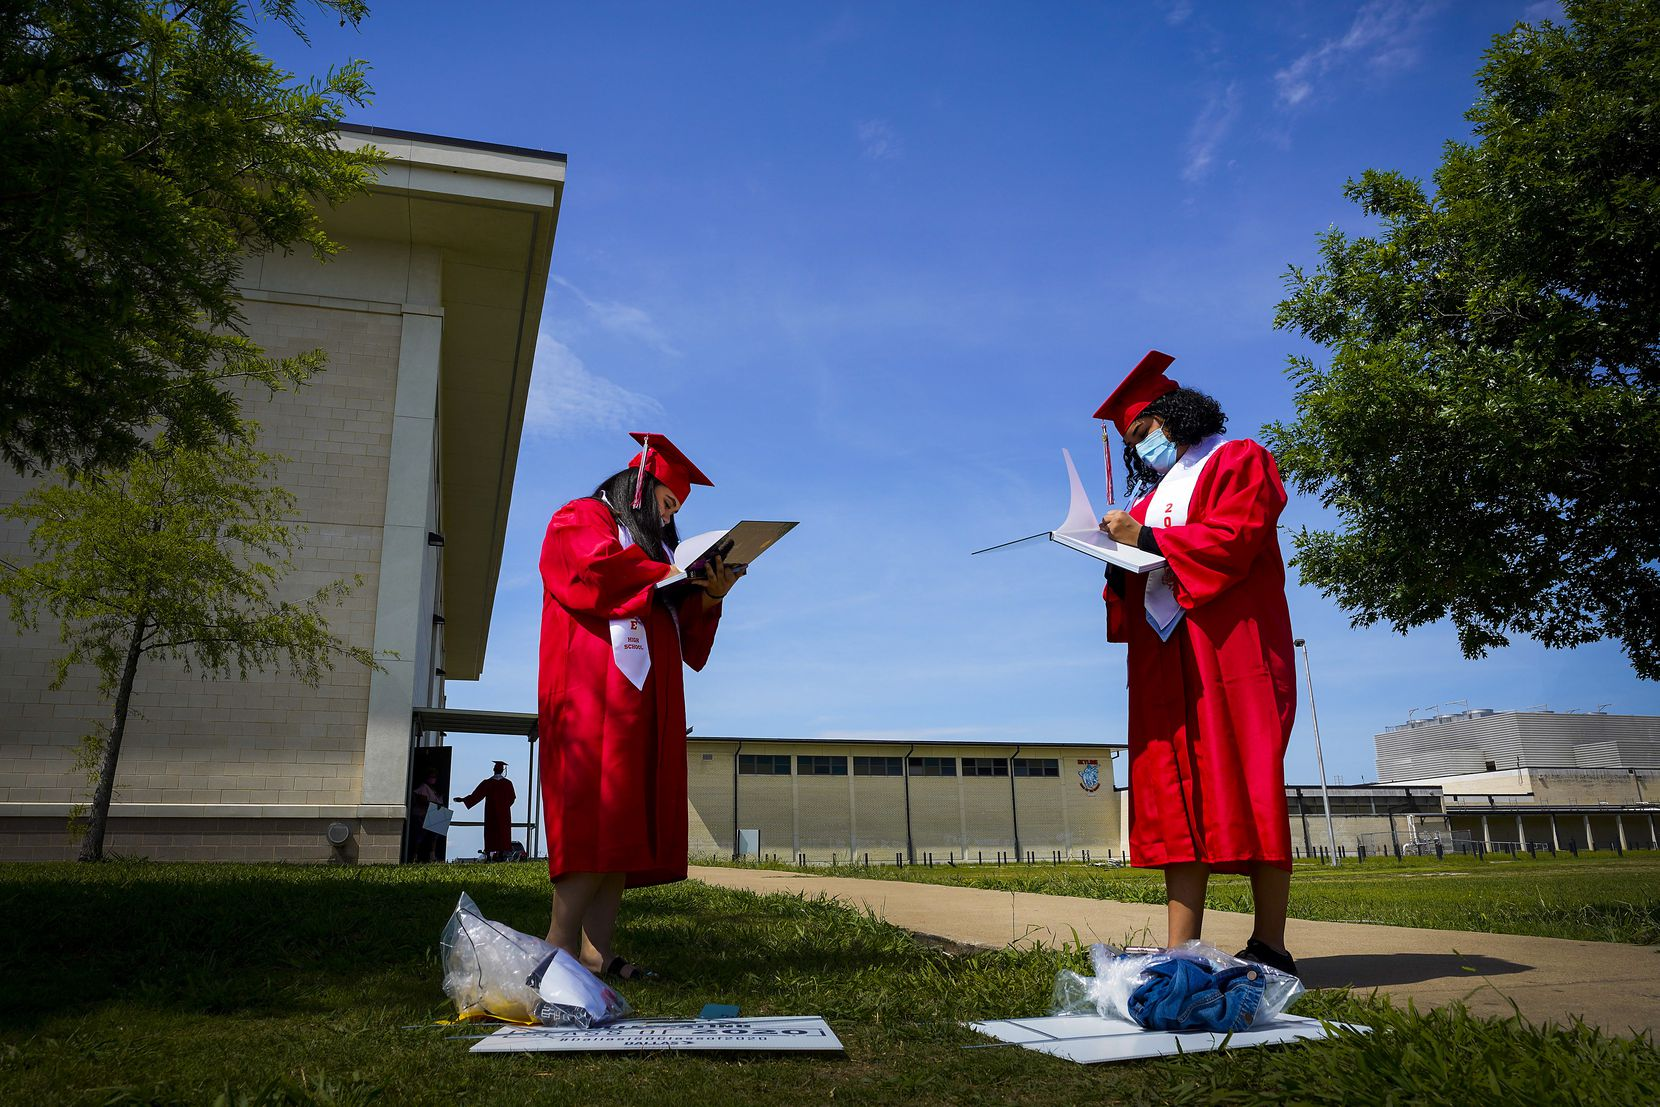 Seniors Andrea Soto (left) and Samanta Zuniga signed each other's yearbooks after picking up their graduation caps and gowns at Skyline High School in Dallas on May 11, 2020.